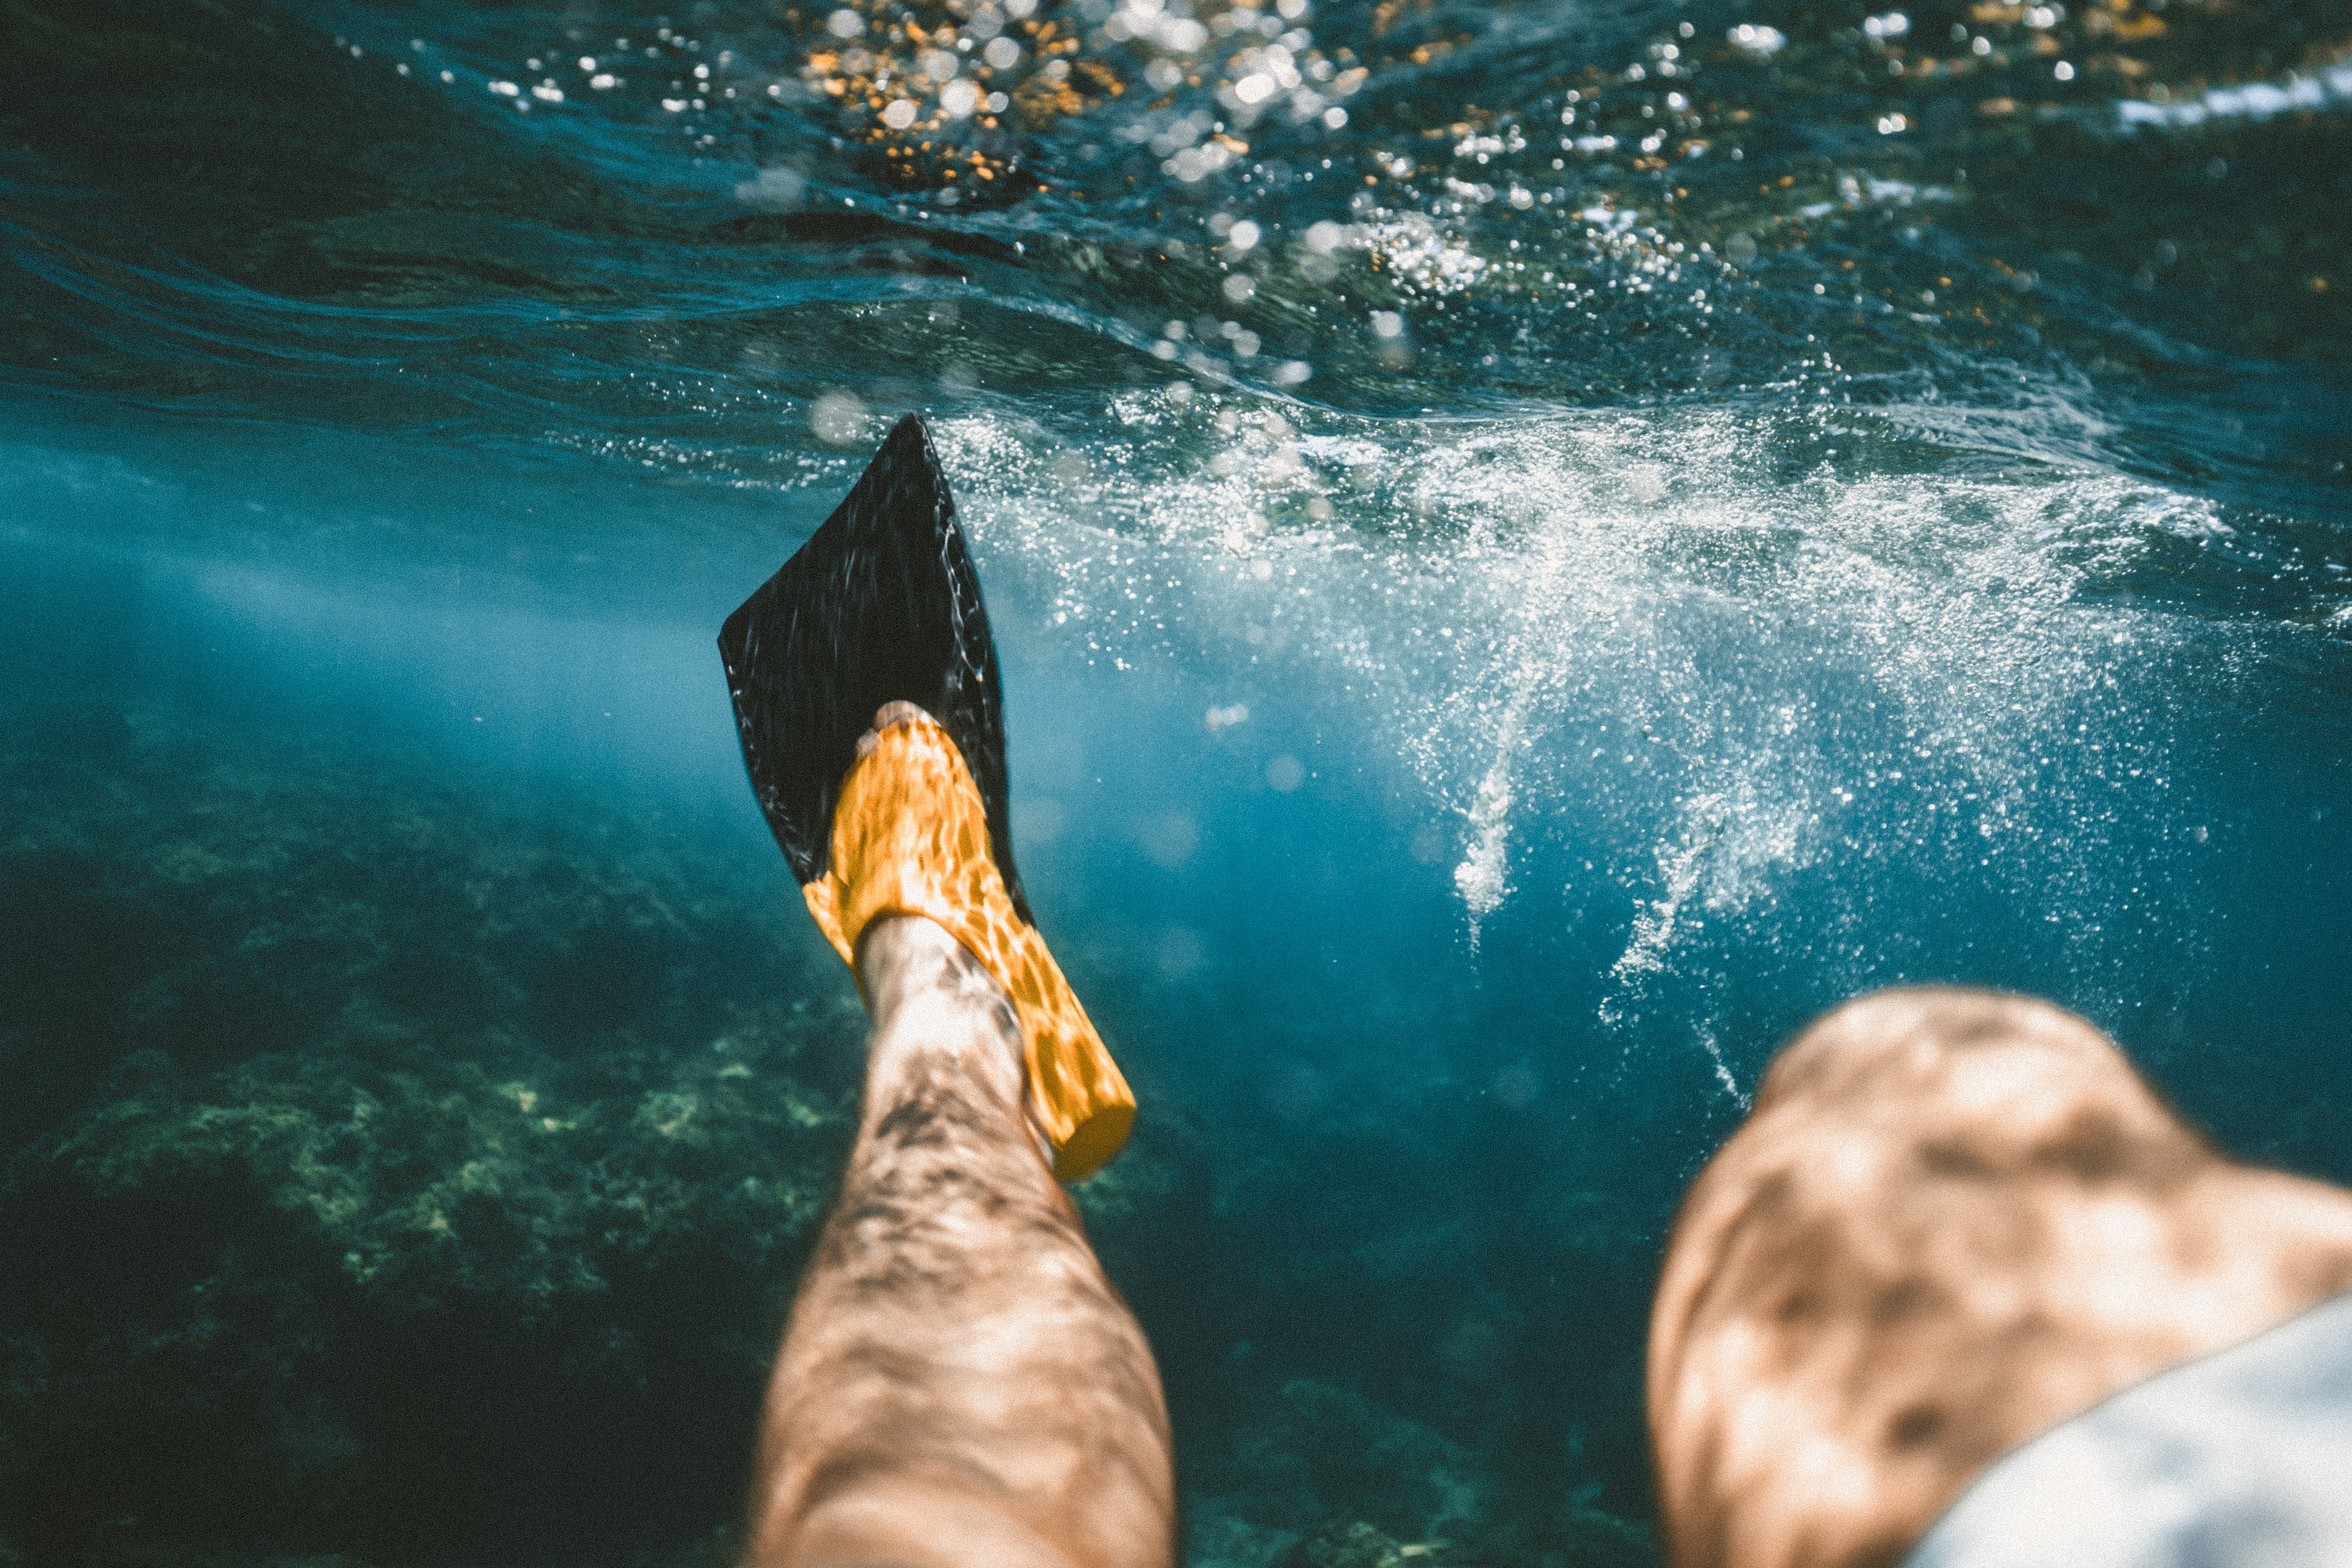 closeup photo of person diving underwater